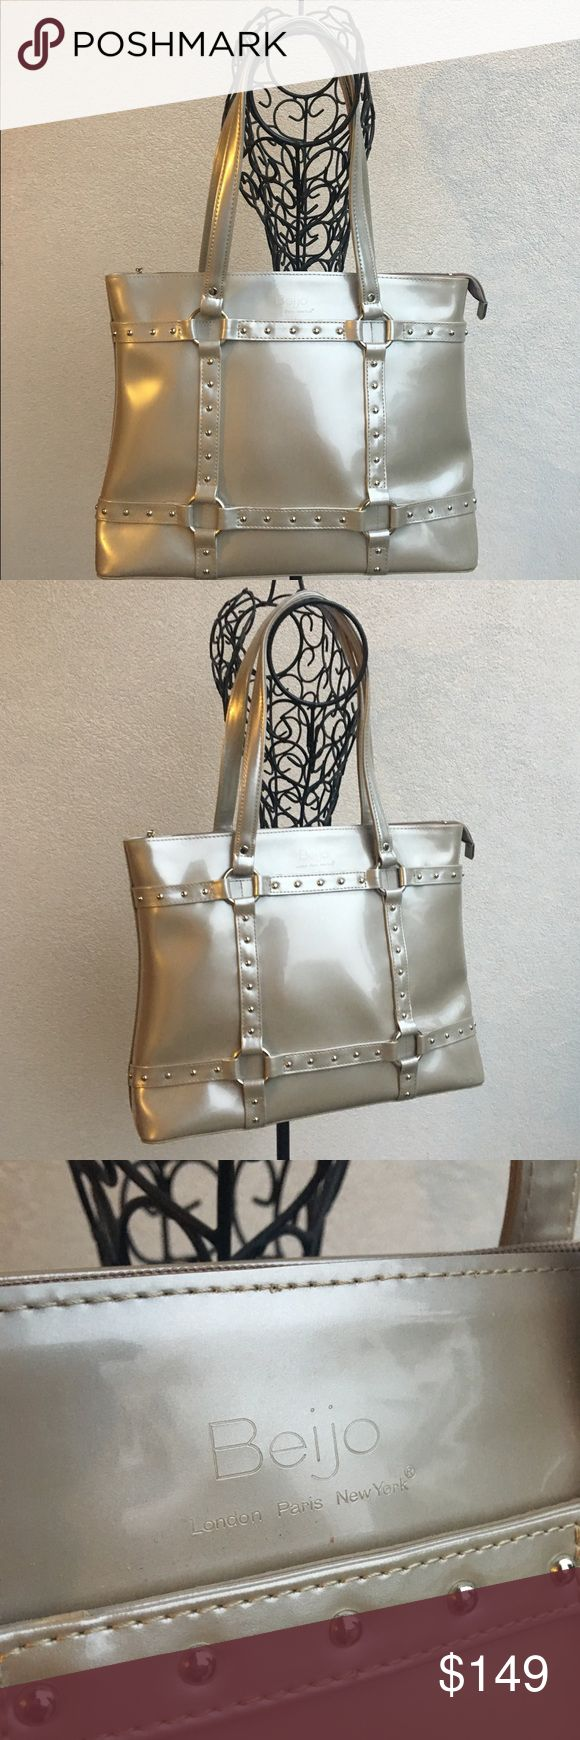 Beijo Metallic Leather Tote Shopper Bag You are viewing a listing for a lovely metallic patent leather tote bag by Beijo. beijo Bags Totes